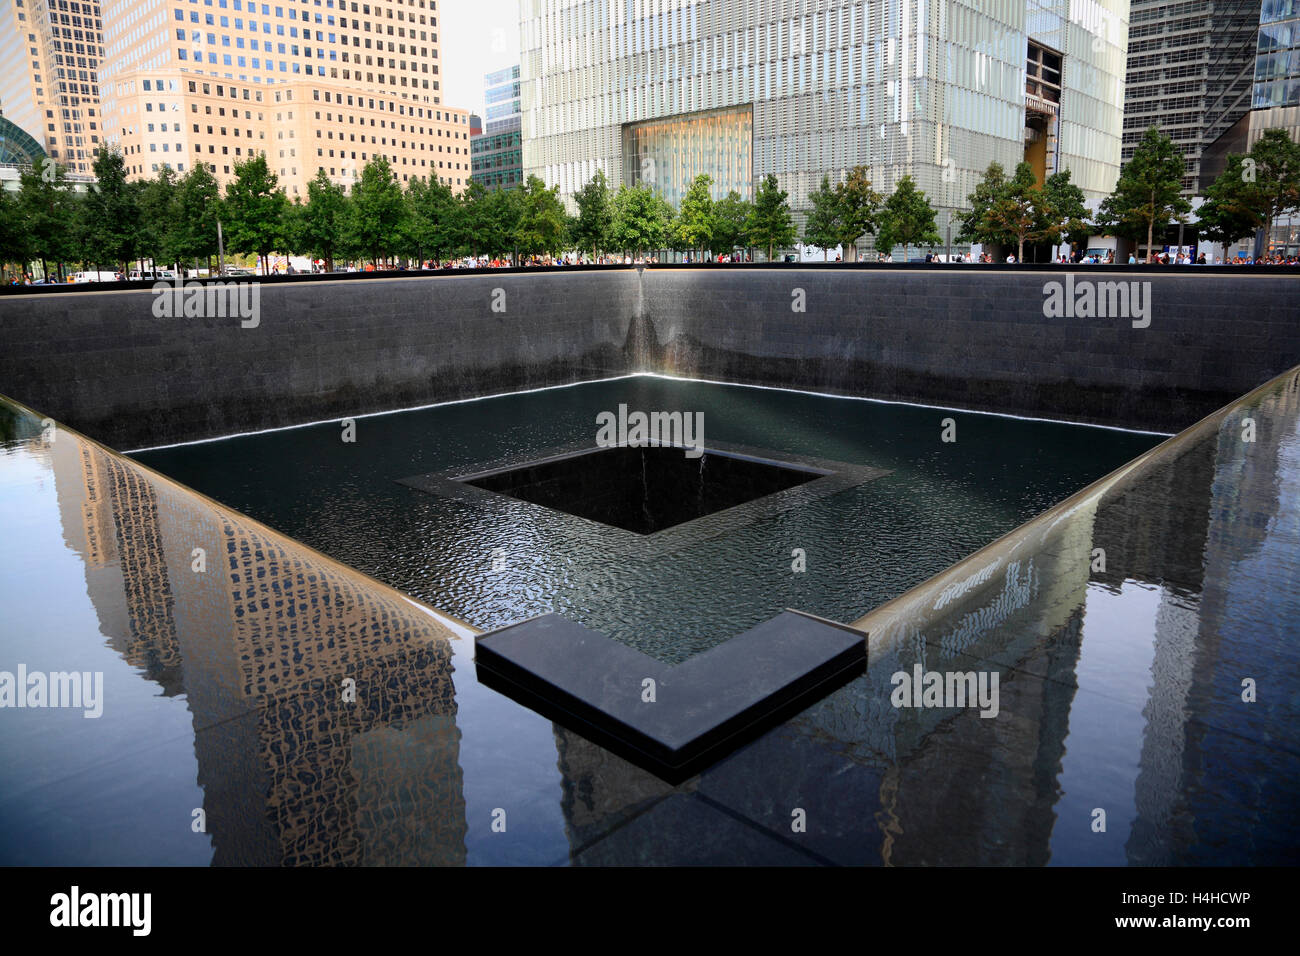 The 9/11 Memorial Pool, Lower Manhattan, New York, USA - Stock Image